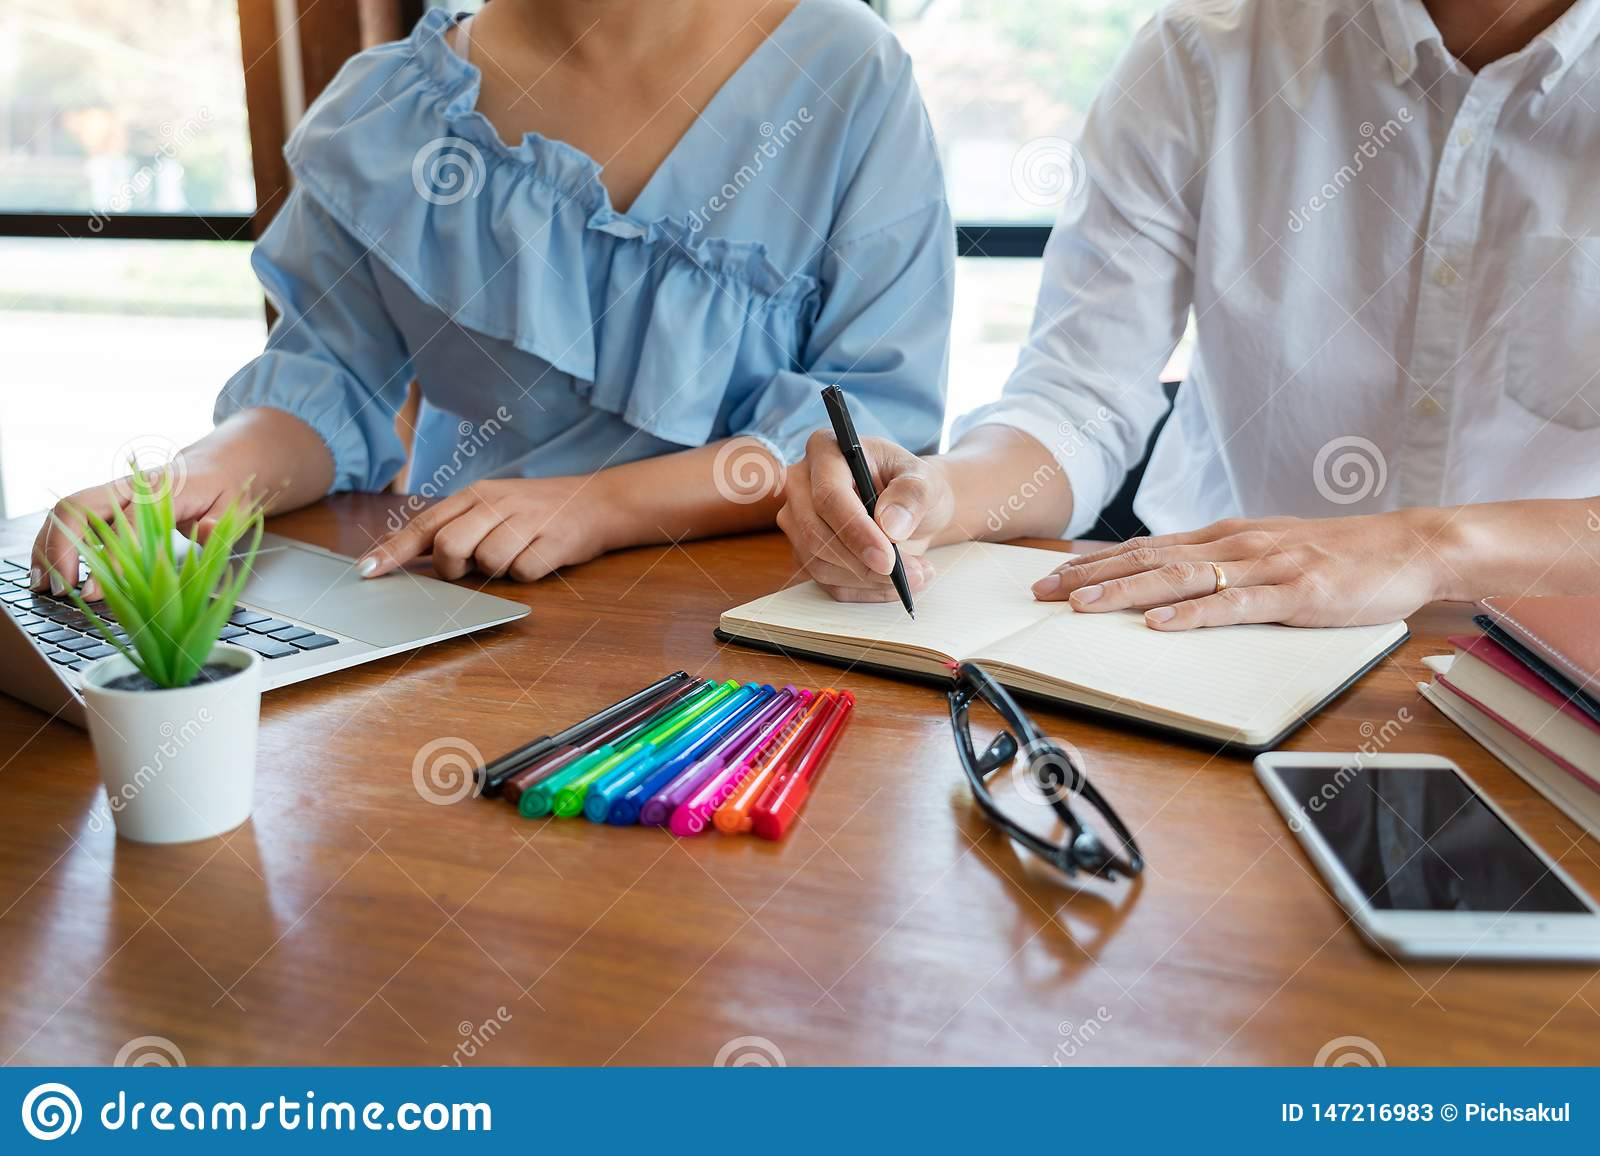 education and school concept, students campus or classmates learning tutoring catching up friend for a test or an exam in